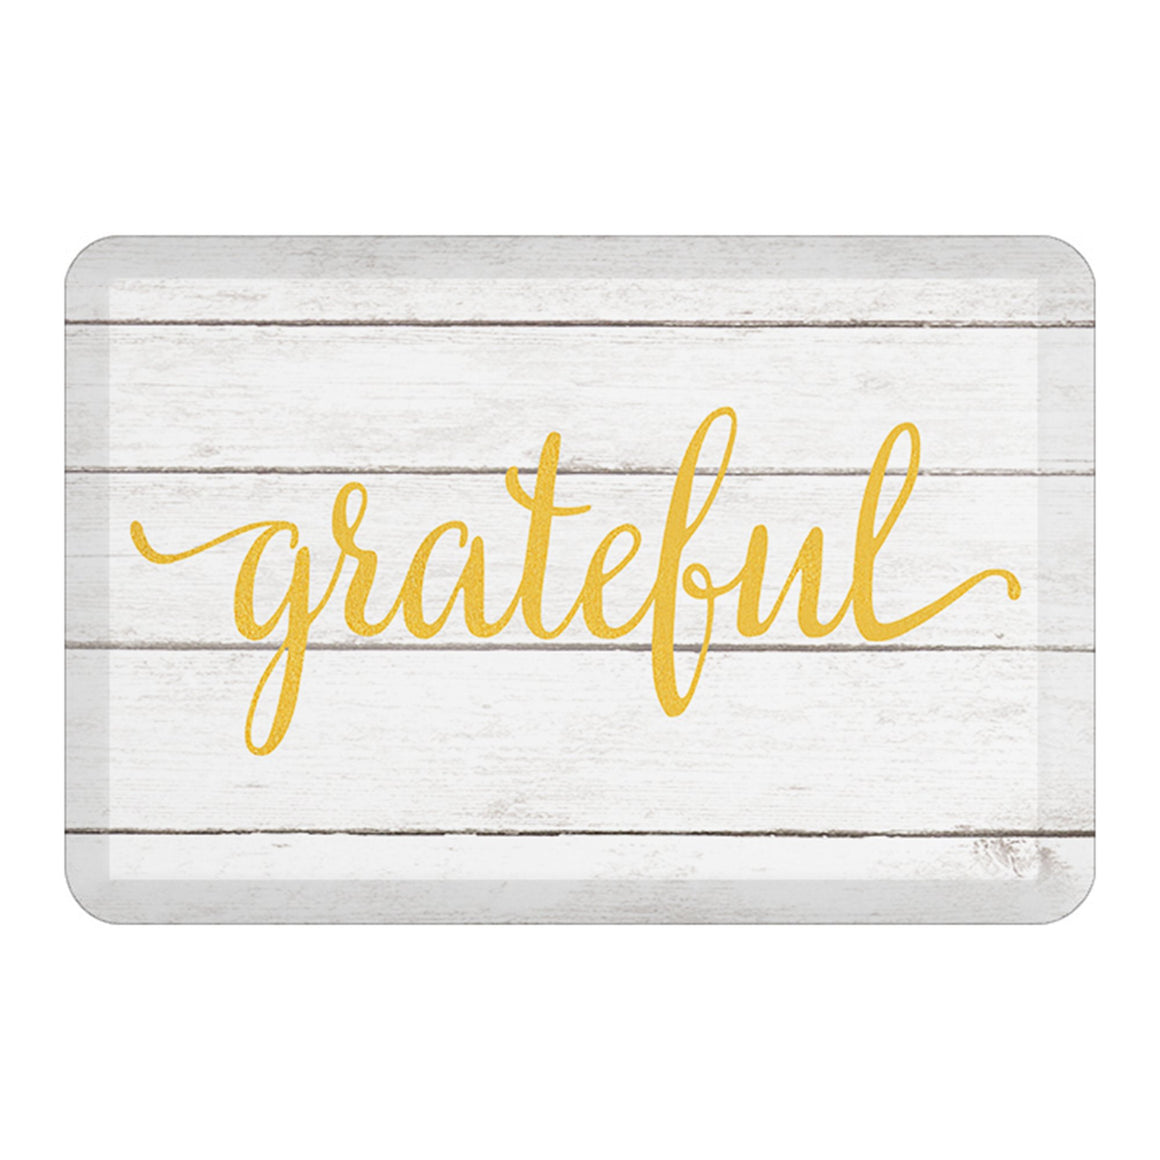 Grateful Floor Mat